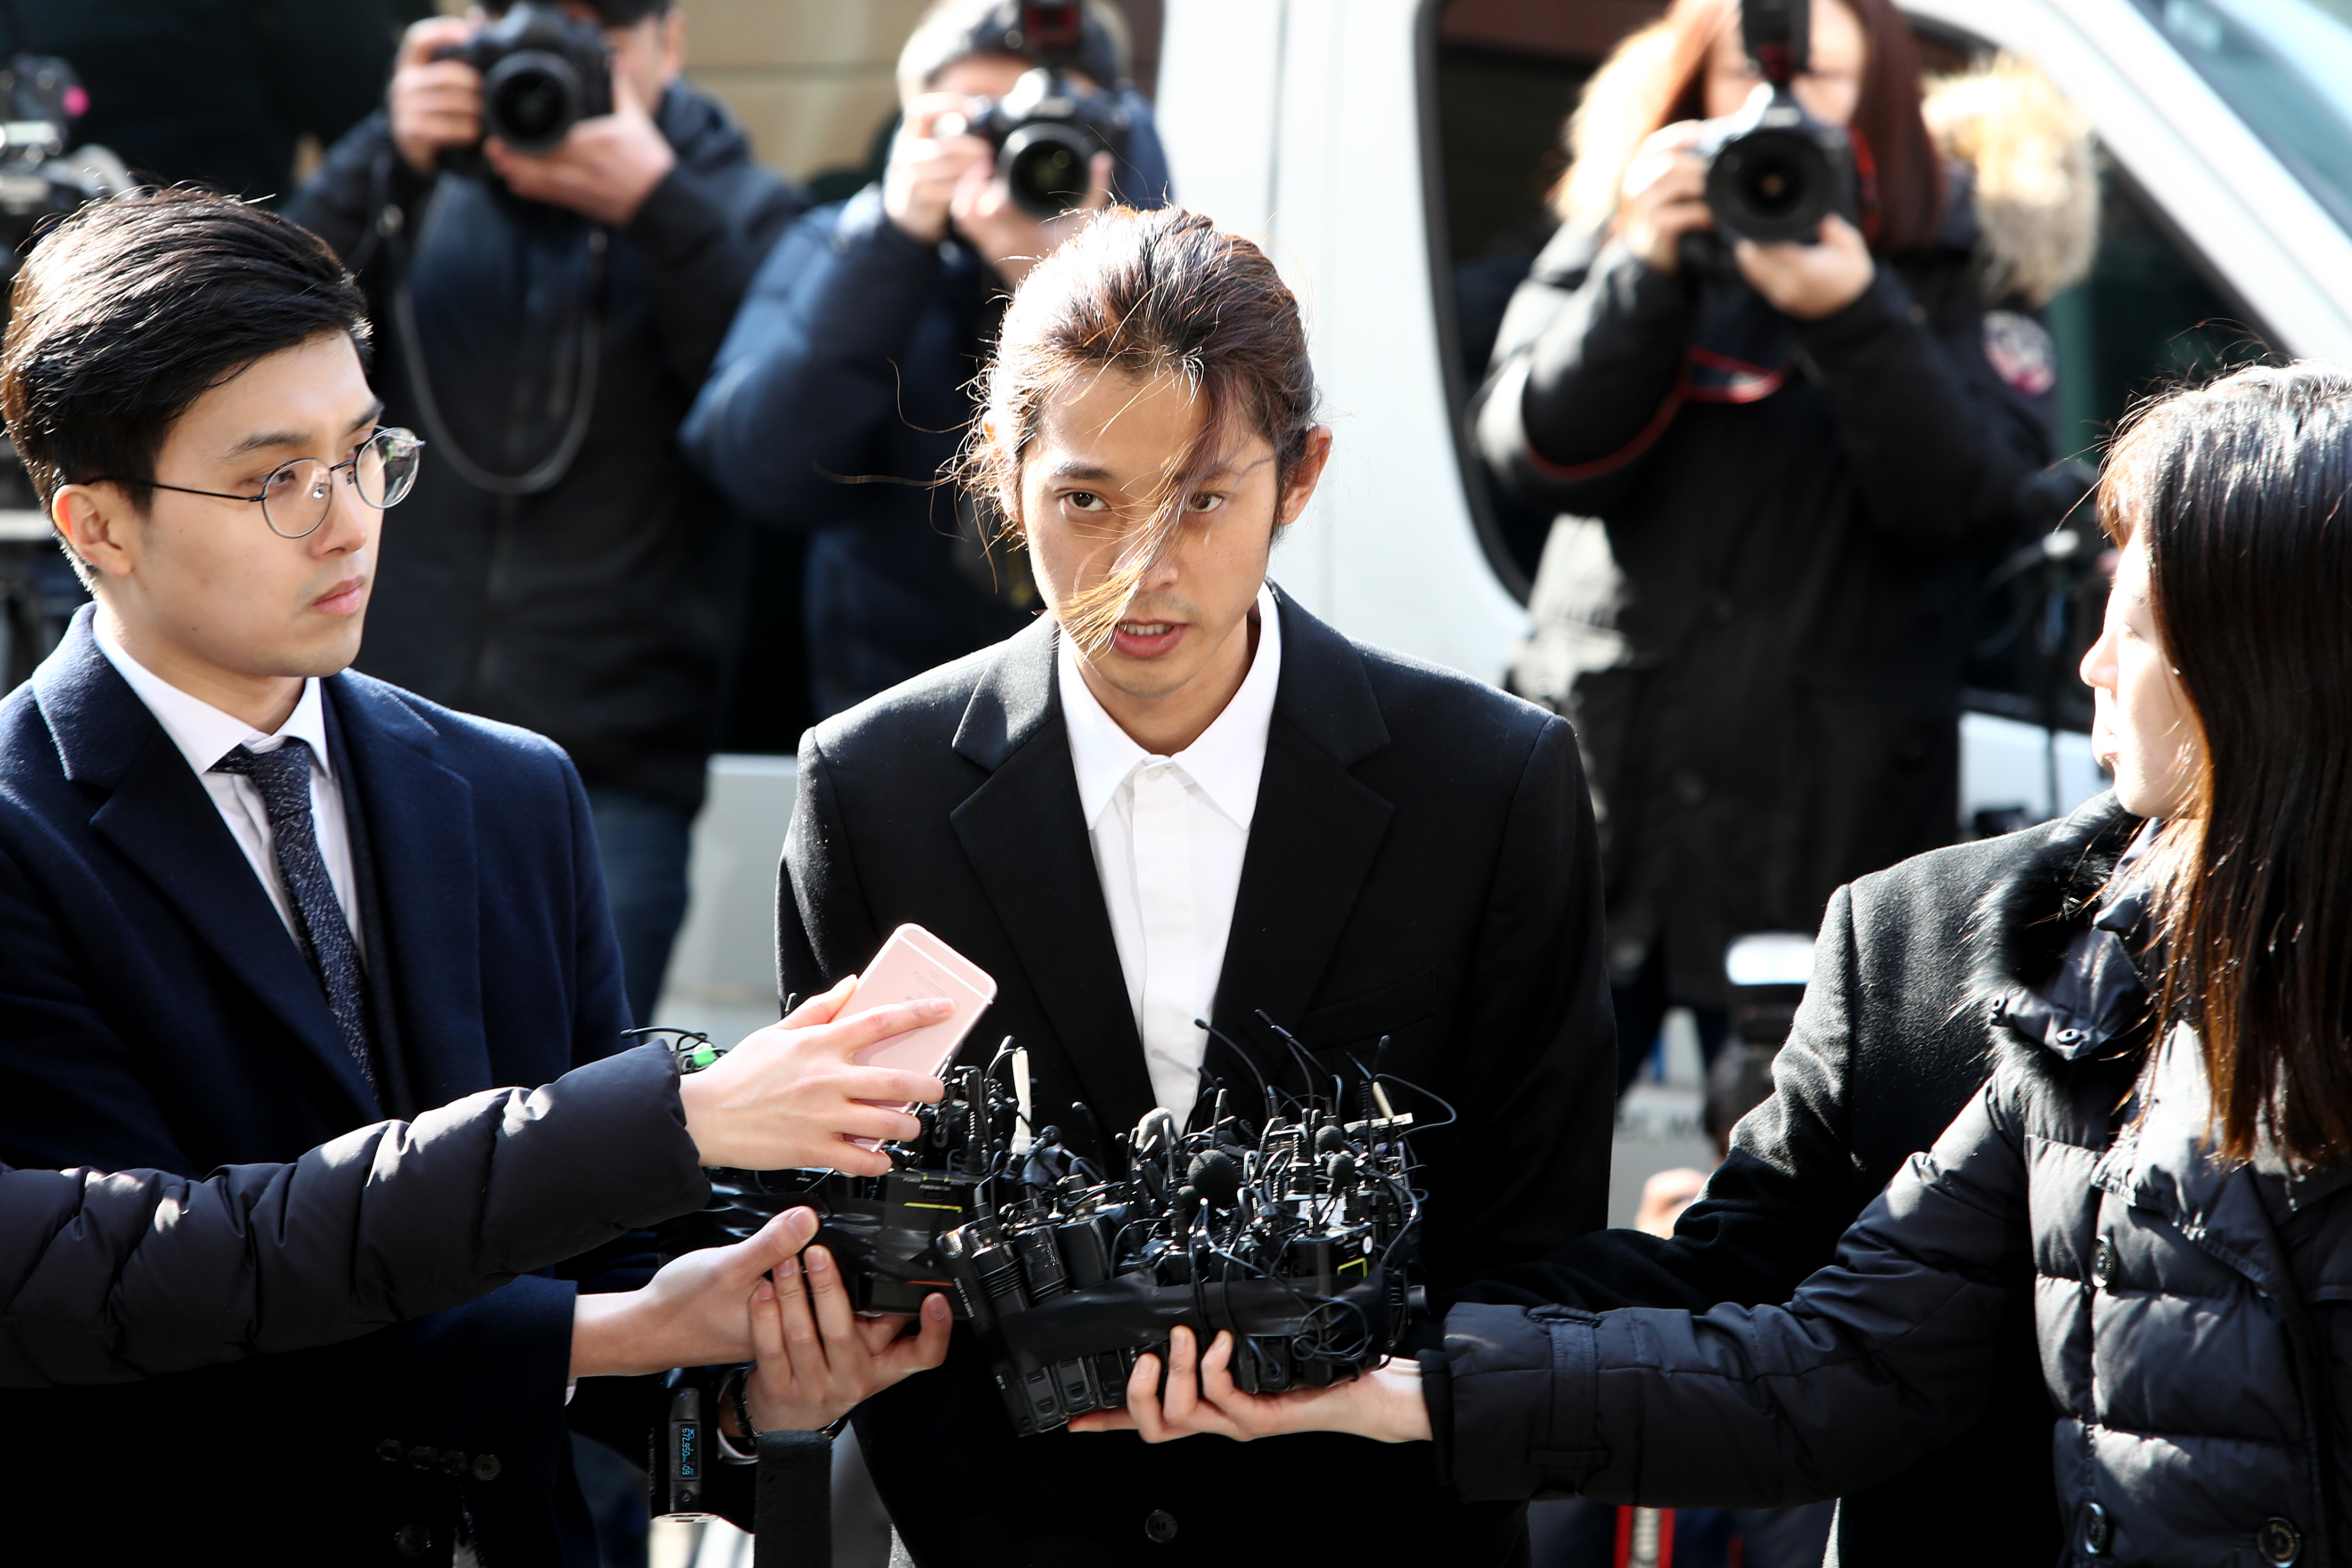 Singer Jung Joon-young is seen arriving at a Seoul Metropolitan Police Agency on March 14, 2019 in Seoul, South Korea. Jung Joon-young, a South Korean singer-songwriter and TV celebrity appeared at the police station on Thursday to be questioned over suspicions of sharing sexual videos in a group chat which included BIGBANG's member Seungri, who is facing charges of supplying prostitution services. (Photo by Chung Sung-Jun/Getty Images)